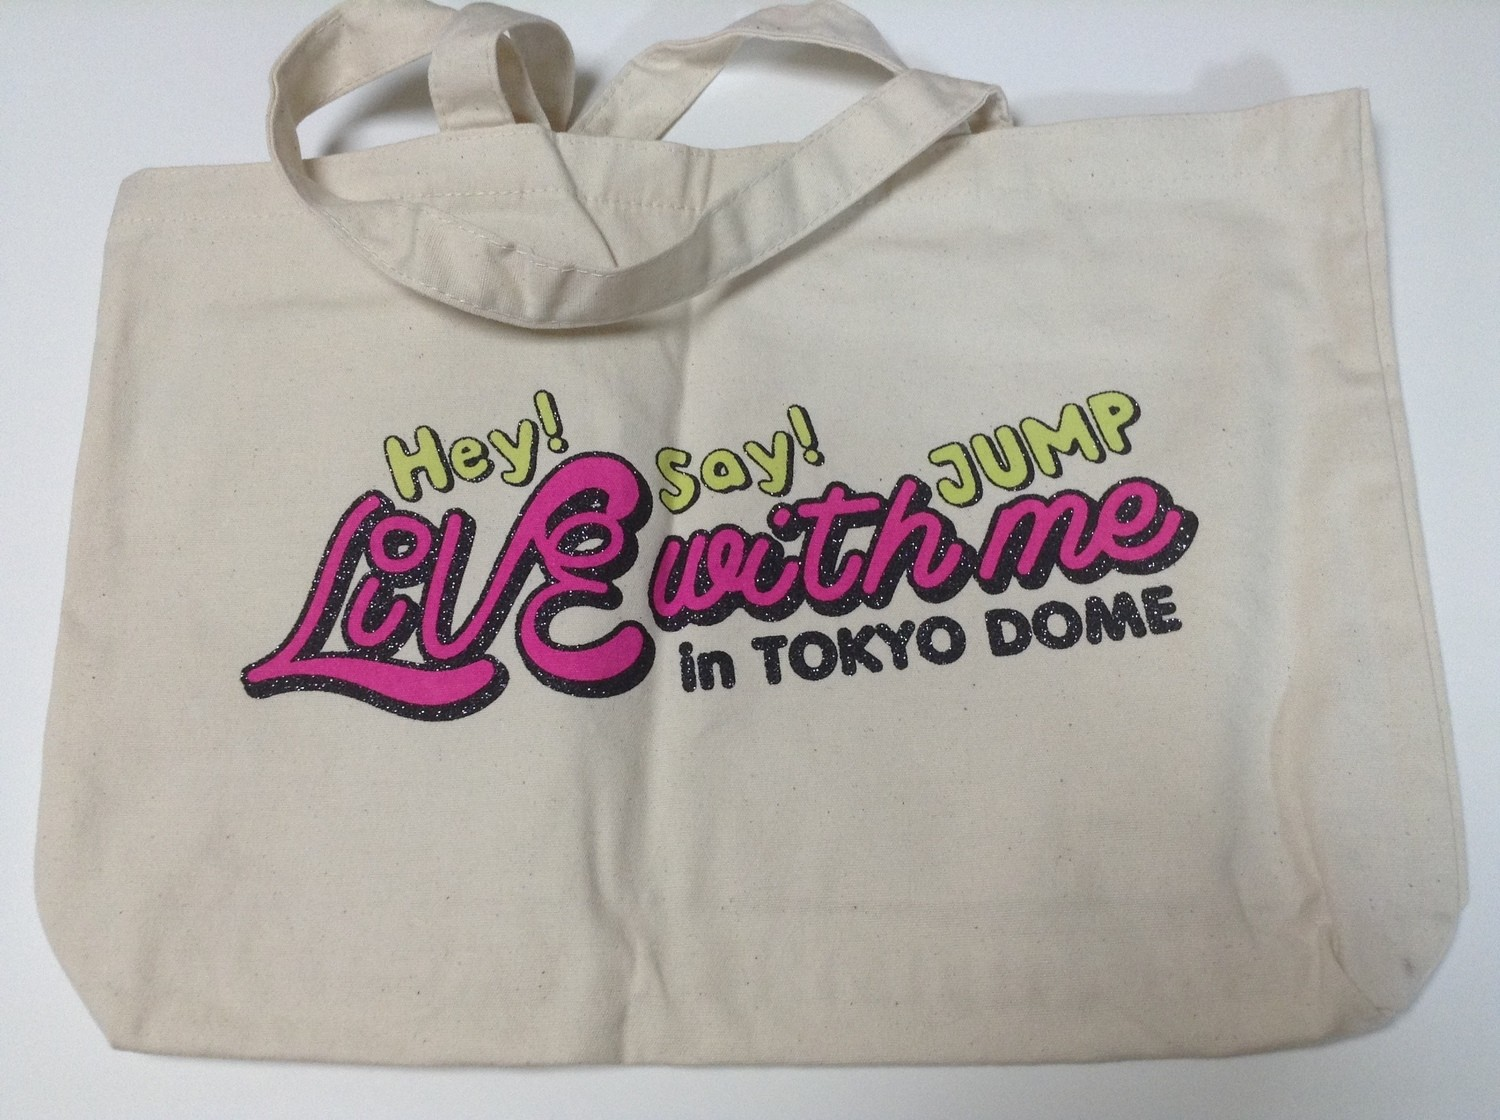 Hey Say JUMP Live With Me Shopping Bag